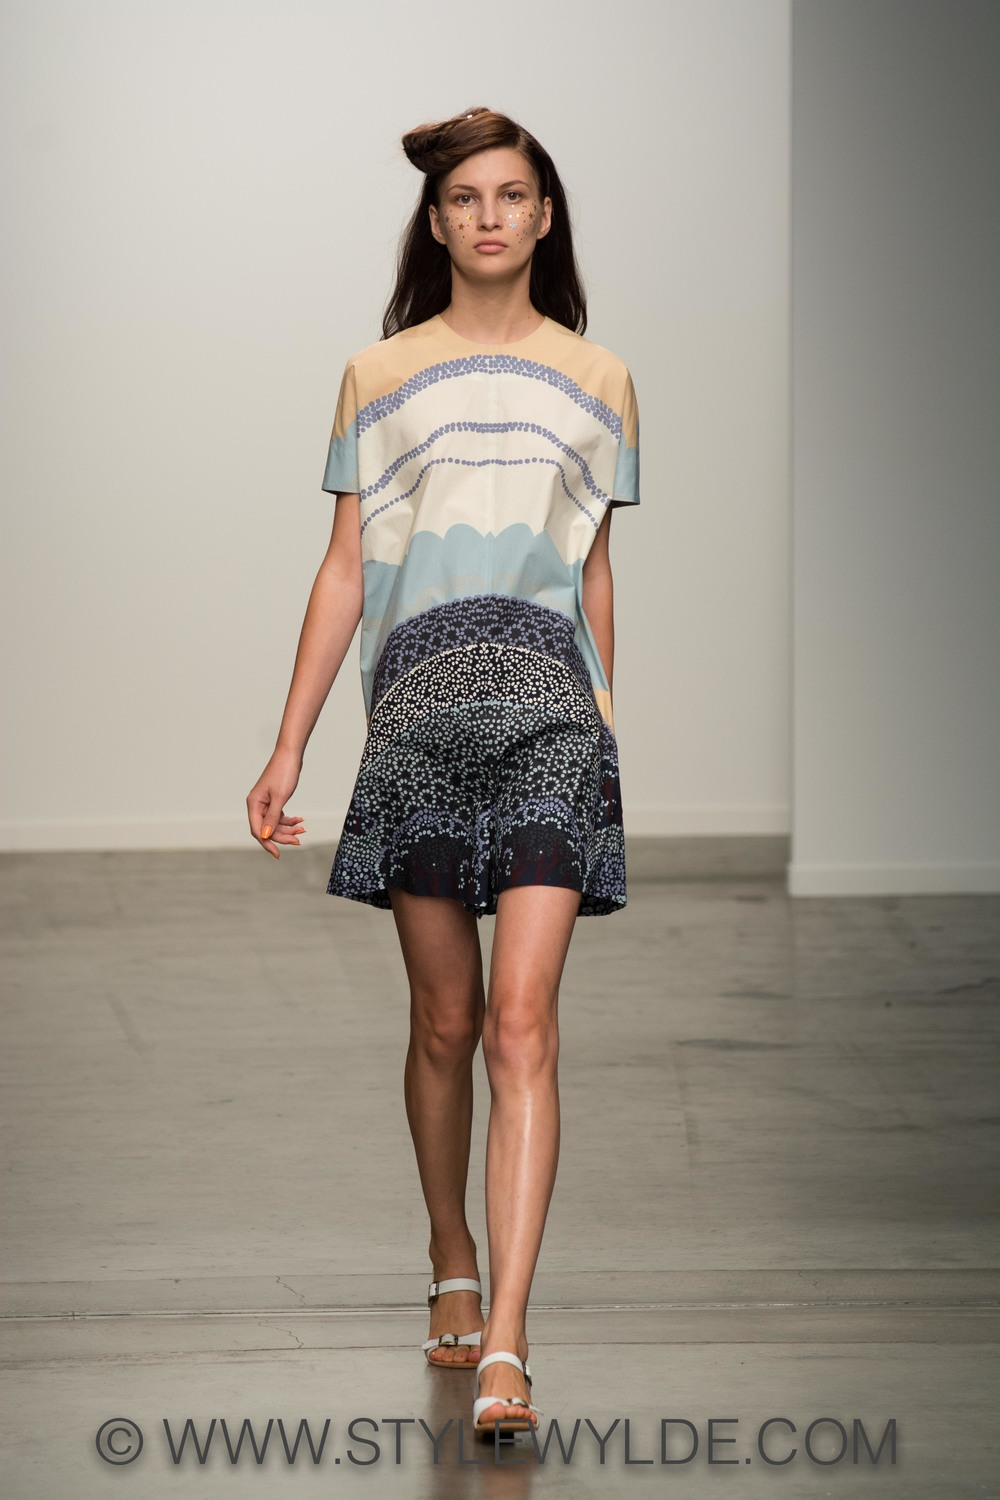 StyleWylde_adetacher_FOH_SS15_sw (20 of 37).jpg